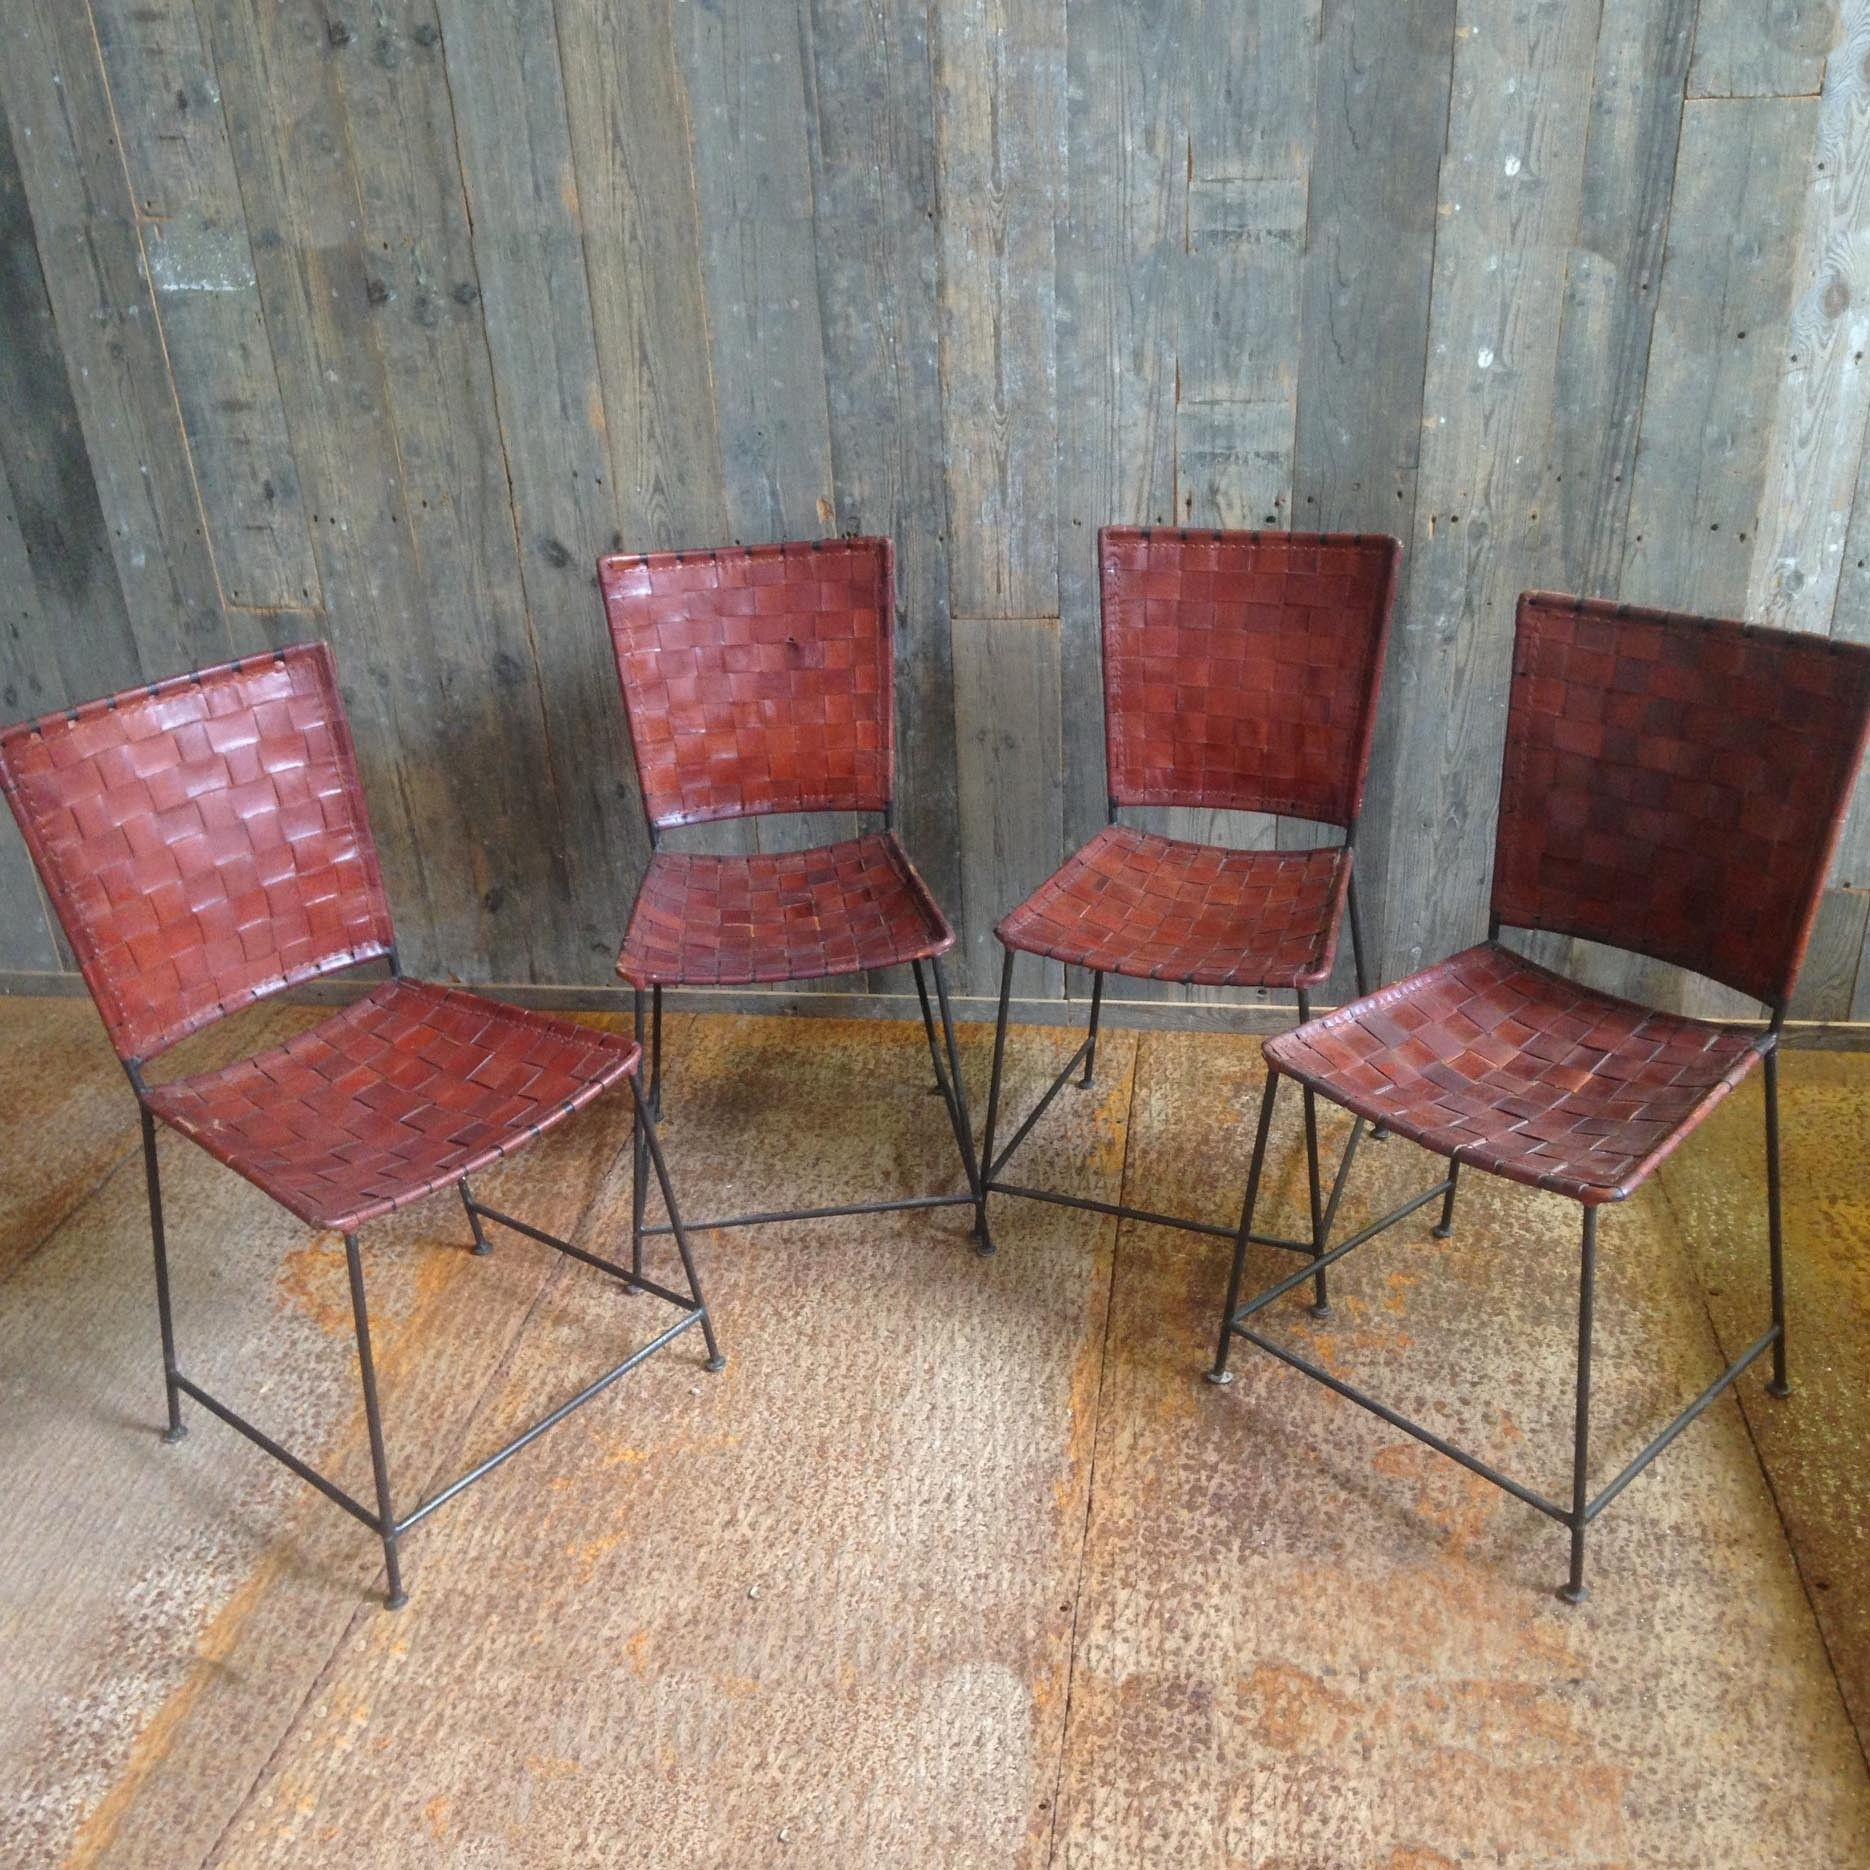 Vintage dining room chairs with leather